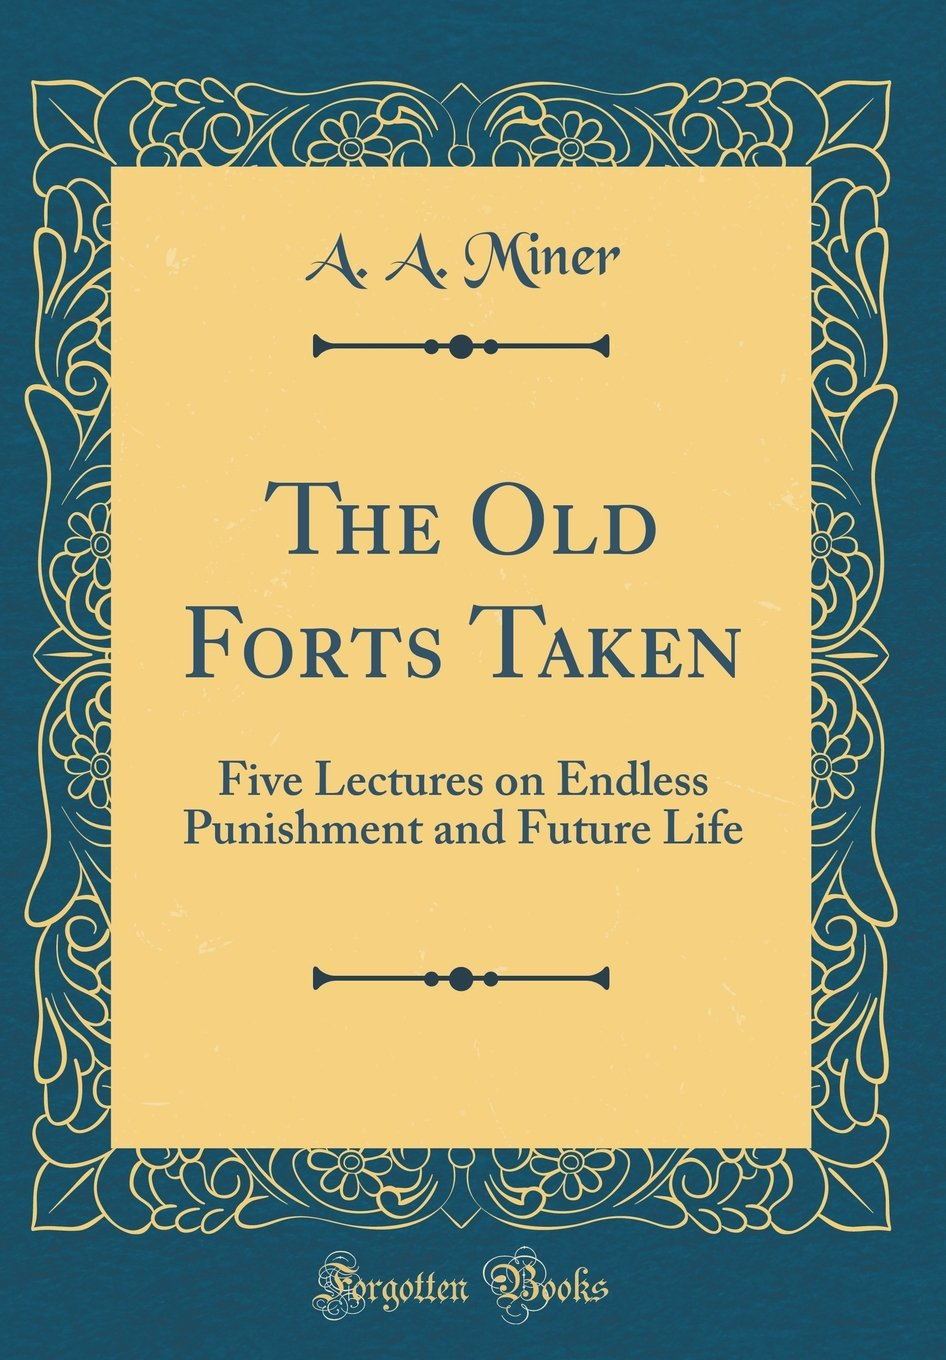 The Old Forts Taken: Five Lectures on Endless Punishment and